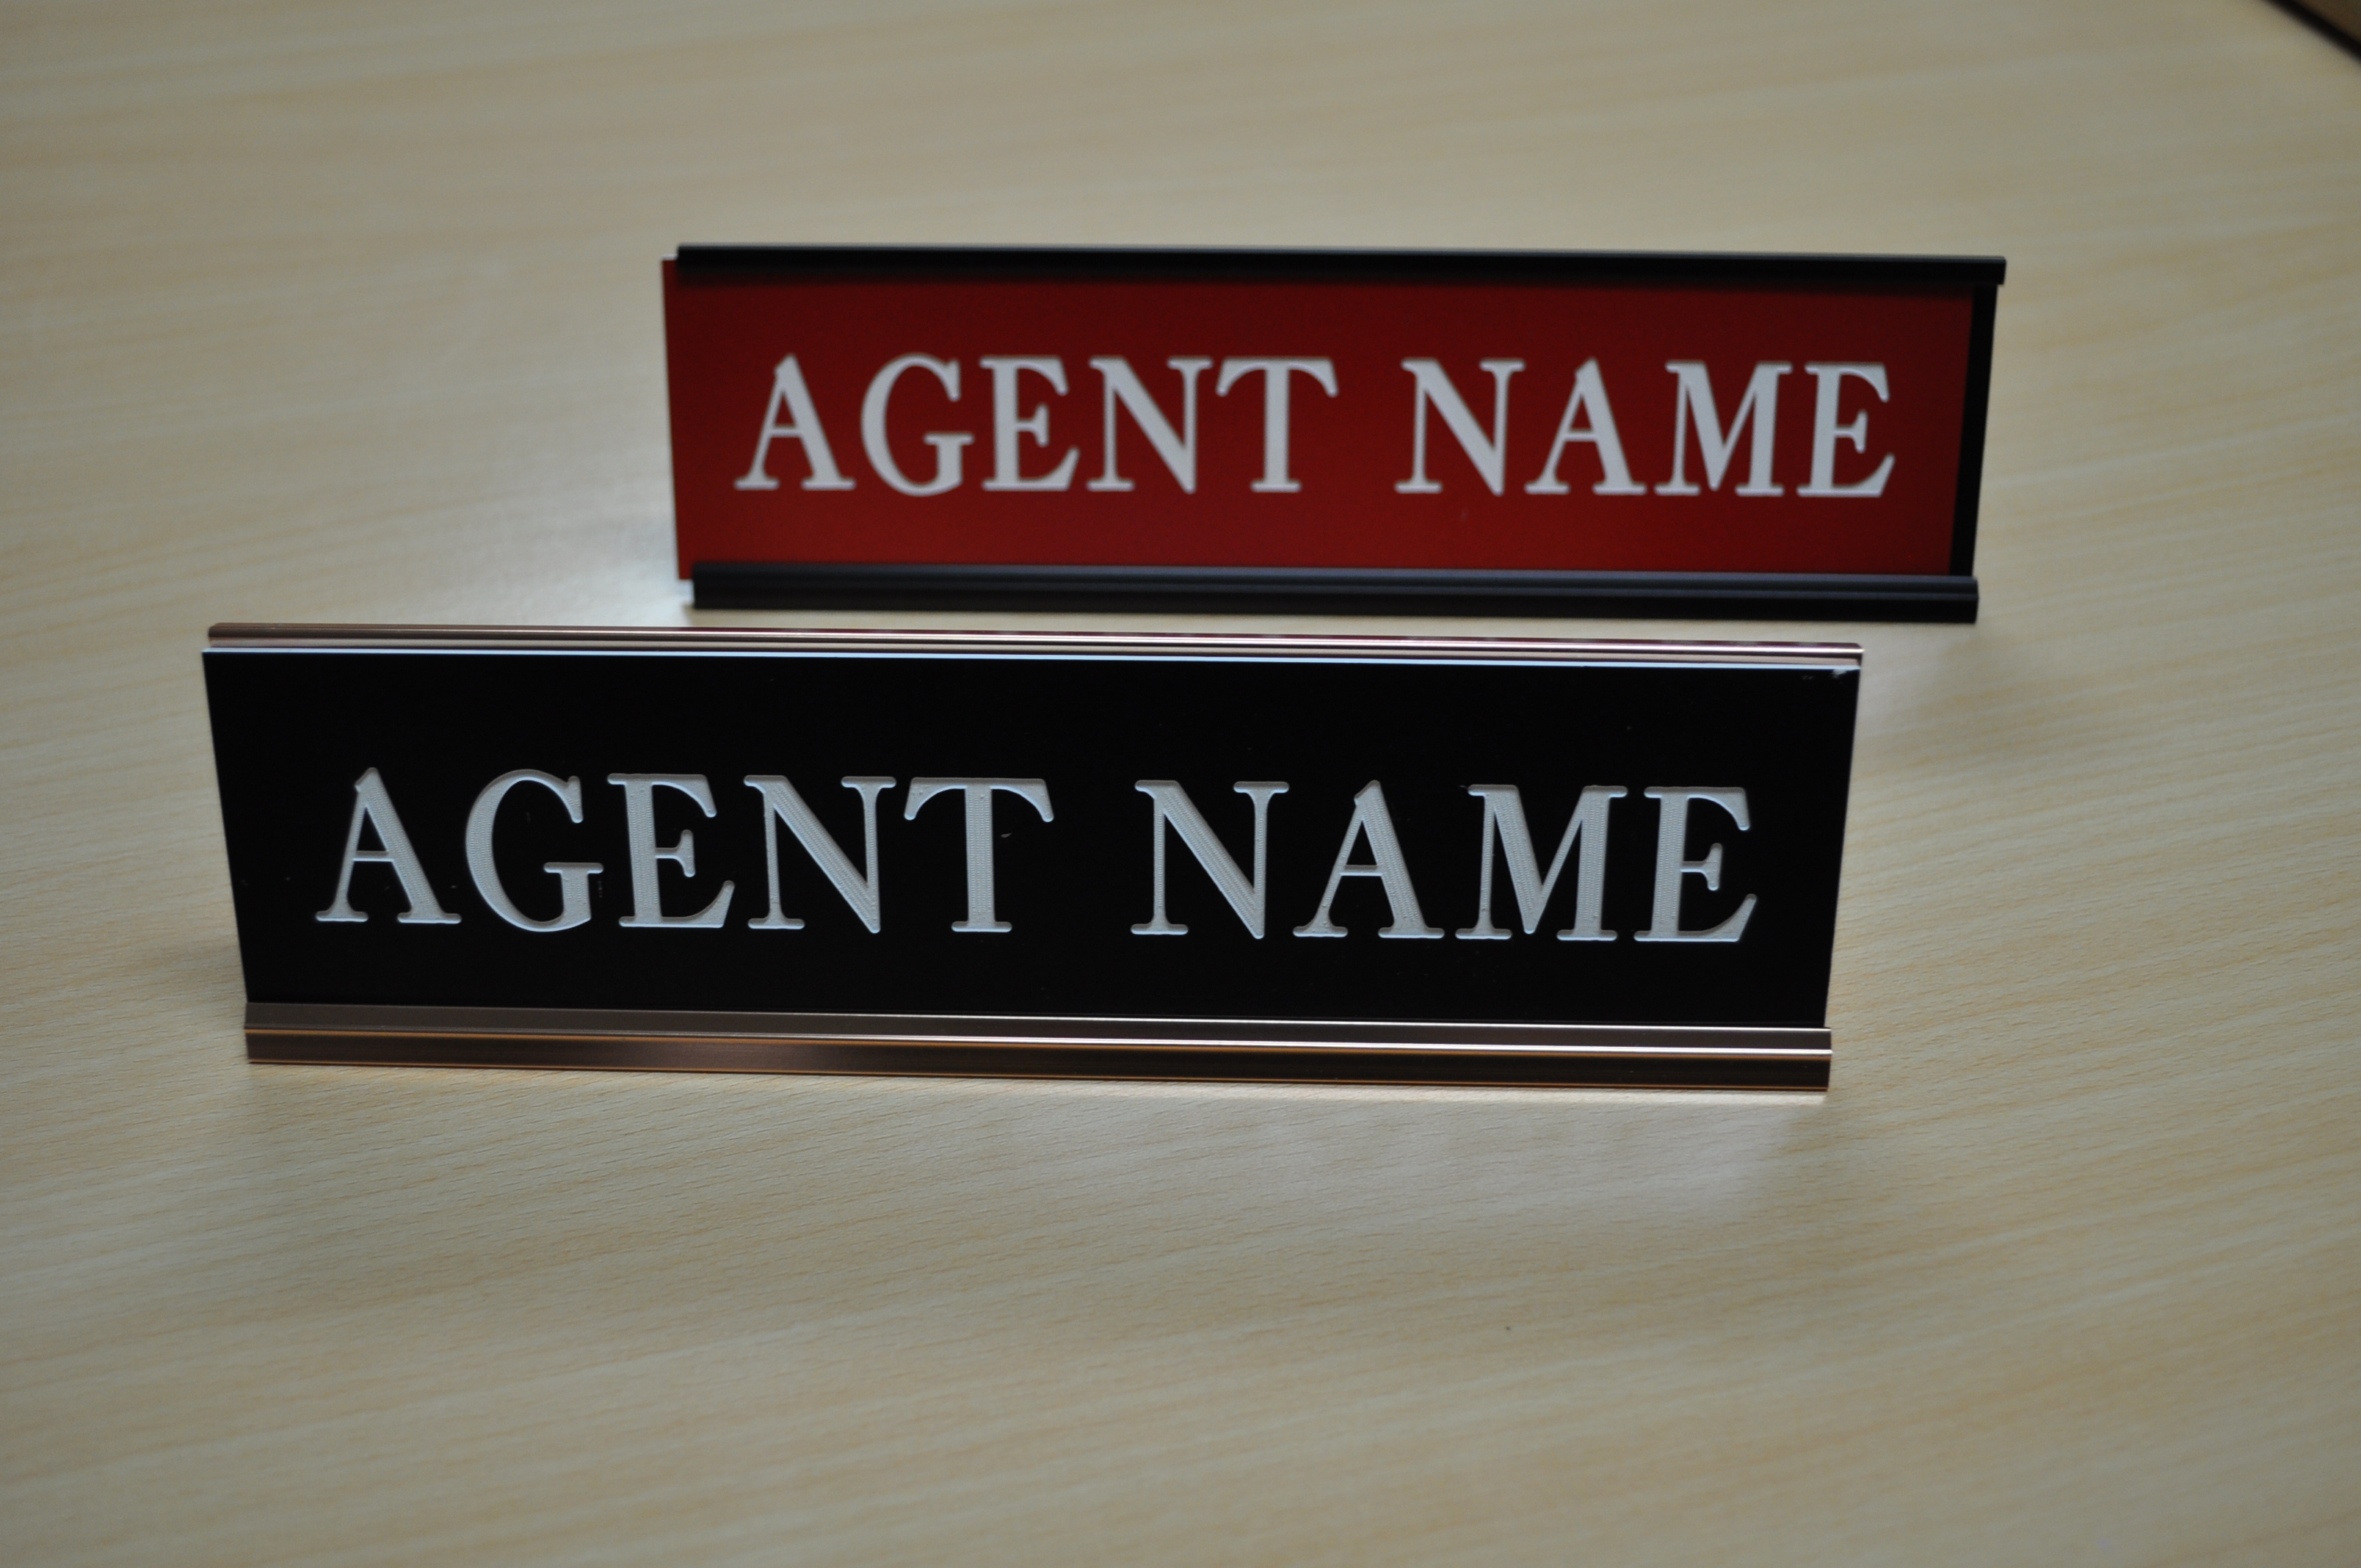 Name Plate: - NAME PLATE WITH DESK HOLDER (2x10) #NP0011